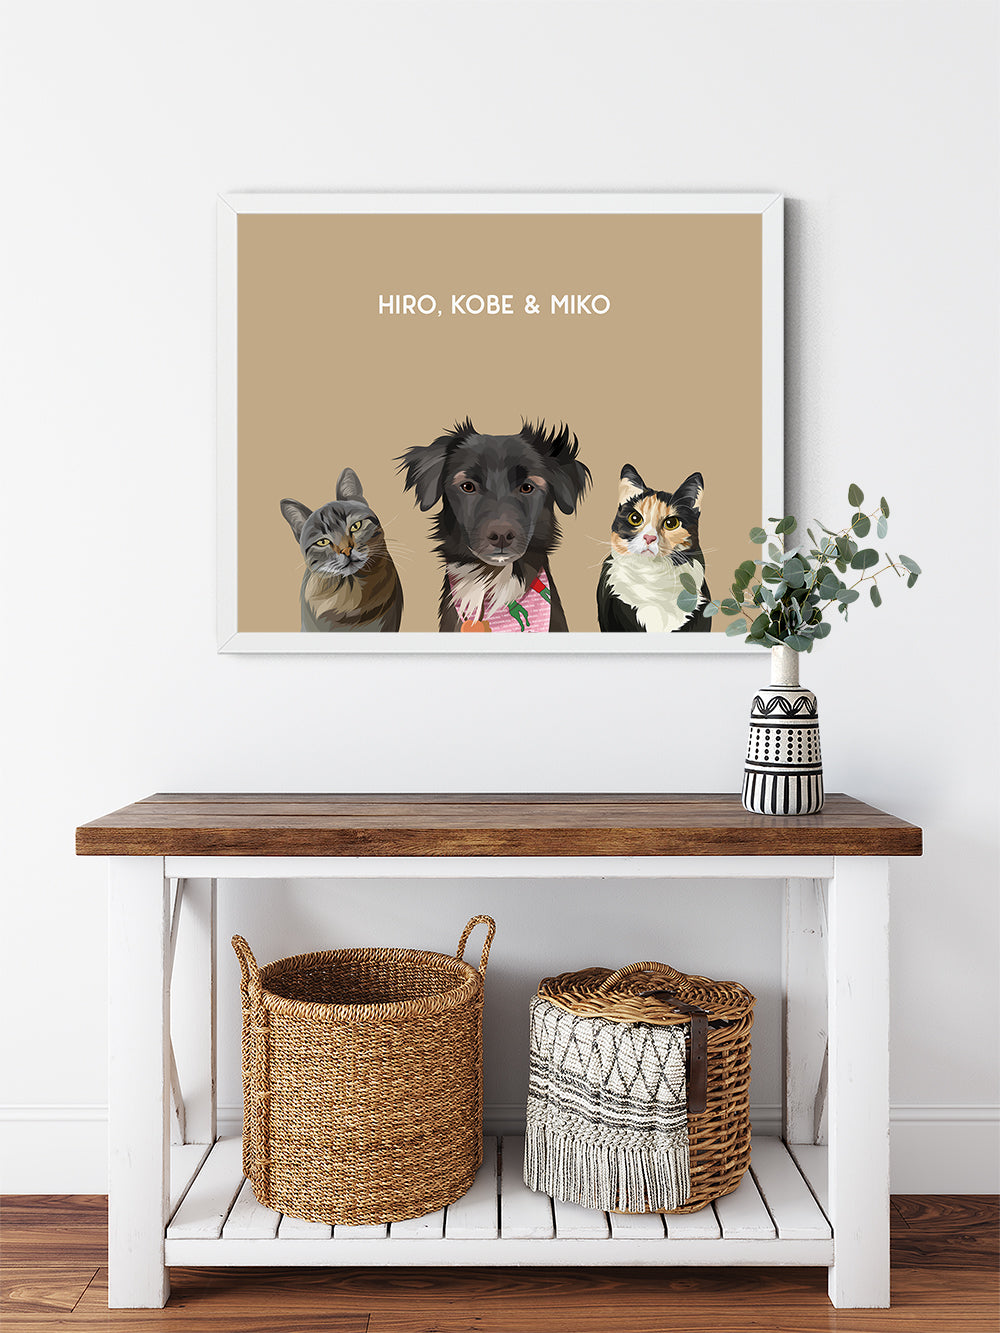 Trio custom framed pet portrait of a cat, dog and cat on desert sand background with white frame. Personalized name of cat, dog and cat in white font.